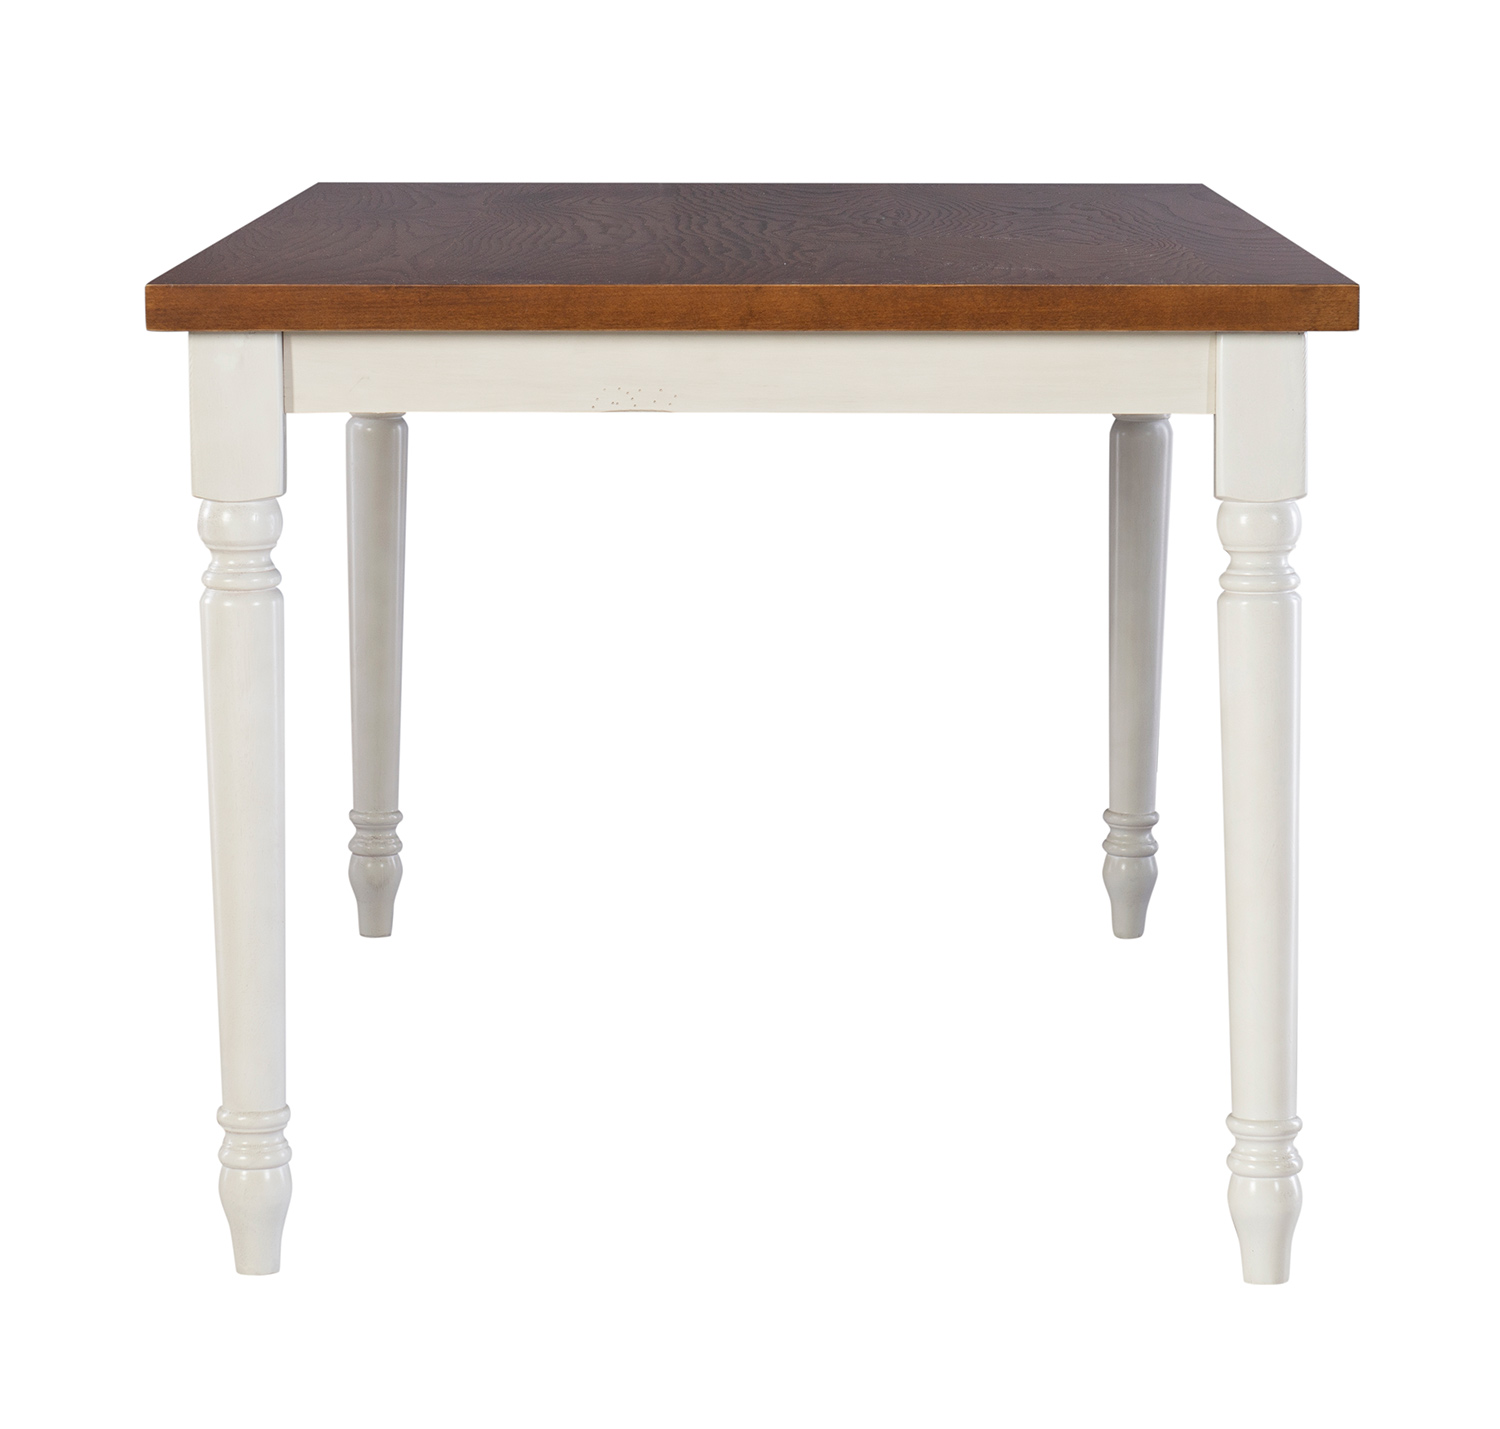 Powell Willow Dining Table - Brown